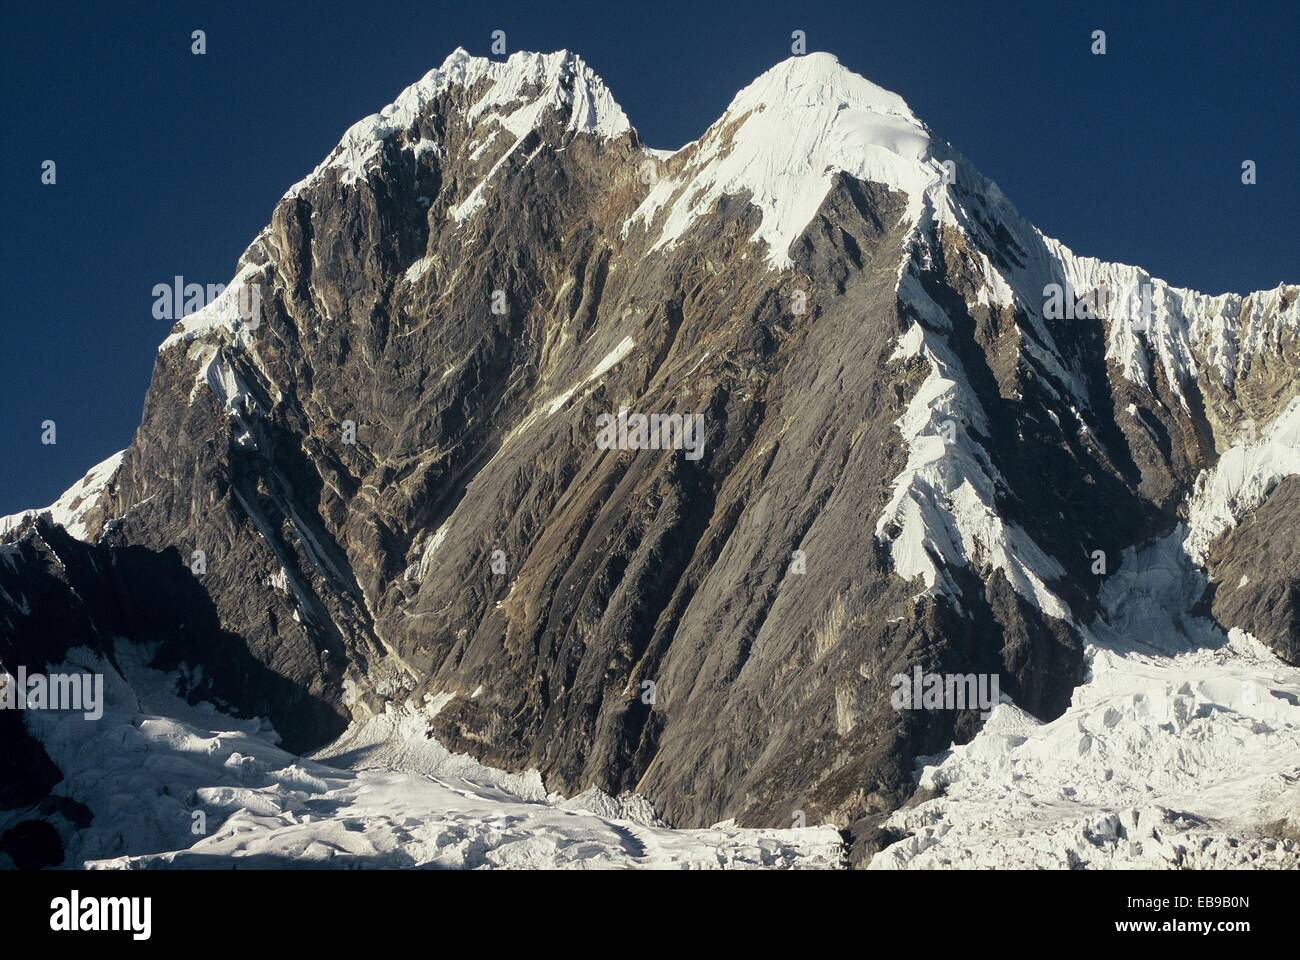 North and Main Summit of Mount Jirishanca 6094 meters, in the range of Huayhuash, the Andes. Peru. - Stock Image